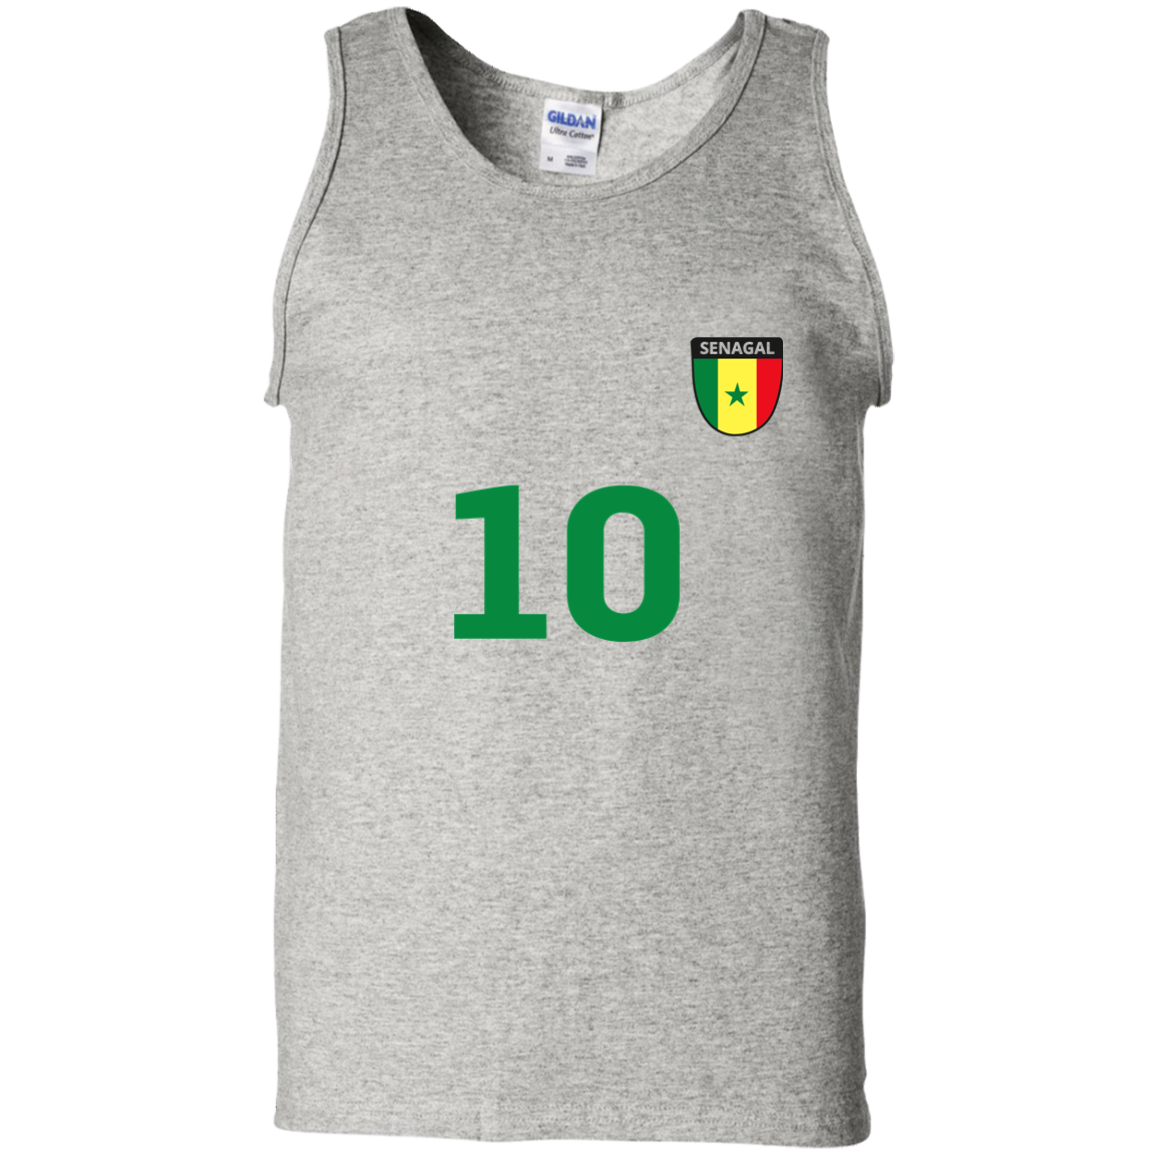 c94e1295e5f Senegal Soccer Jersey World Football 2018 Fan Cotton Tank Top T ...